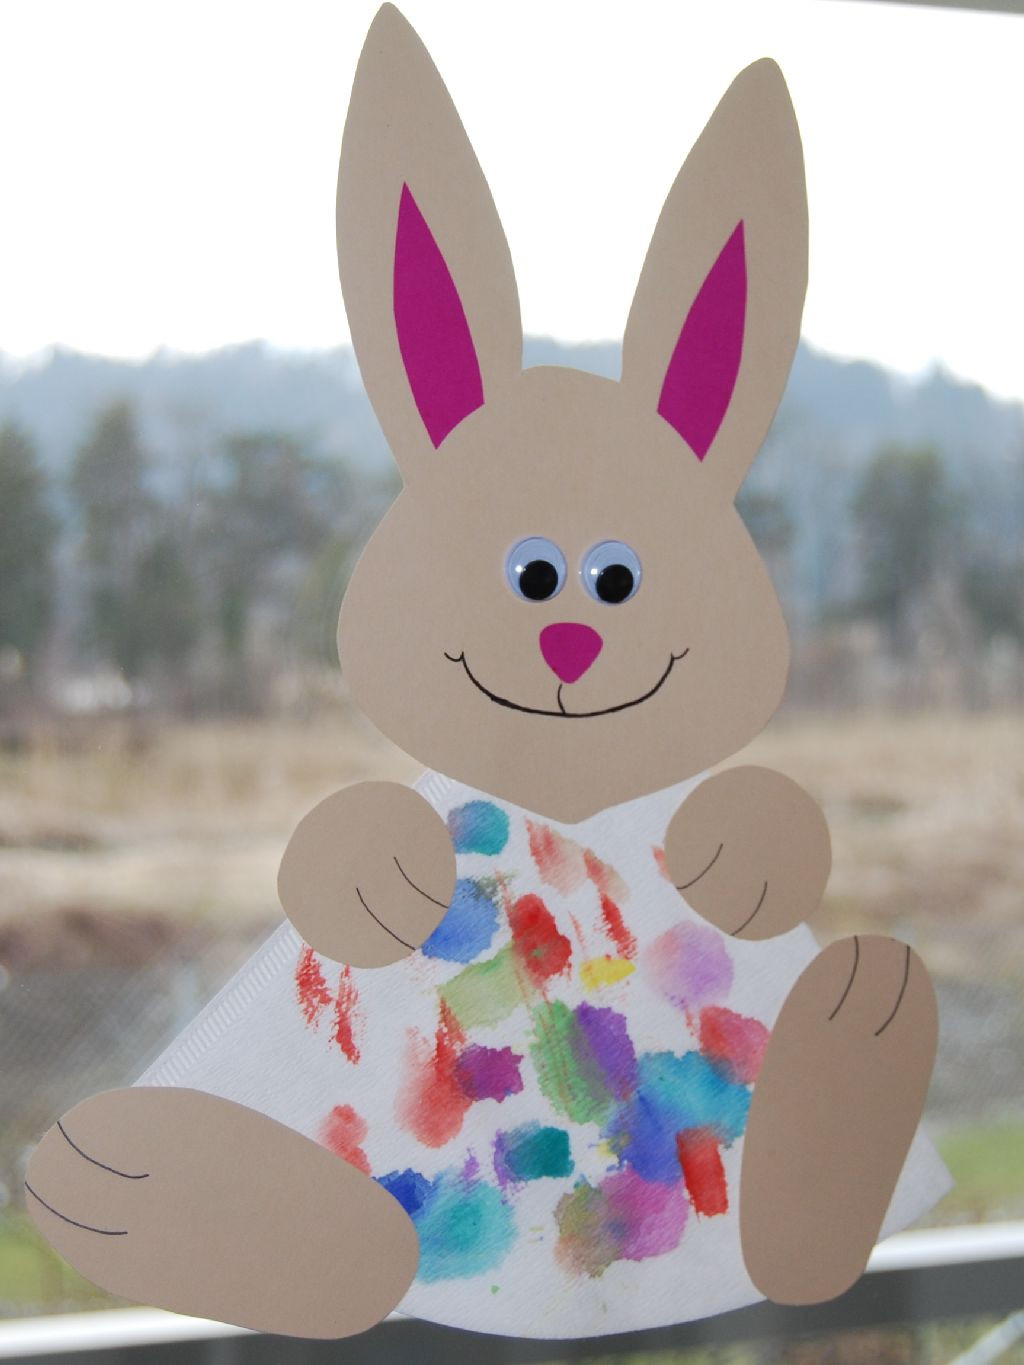 Best ideas about Free Kids Crafts . Save or Pin 30 CREATIVE EASTER CRAFT IDEAS FOR KIDS Godfather Style Now.